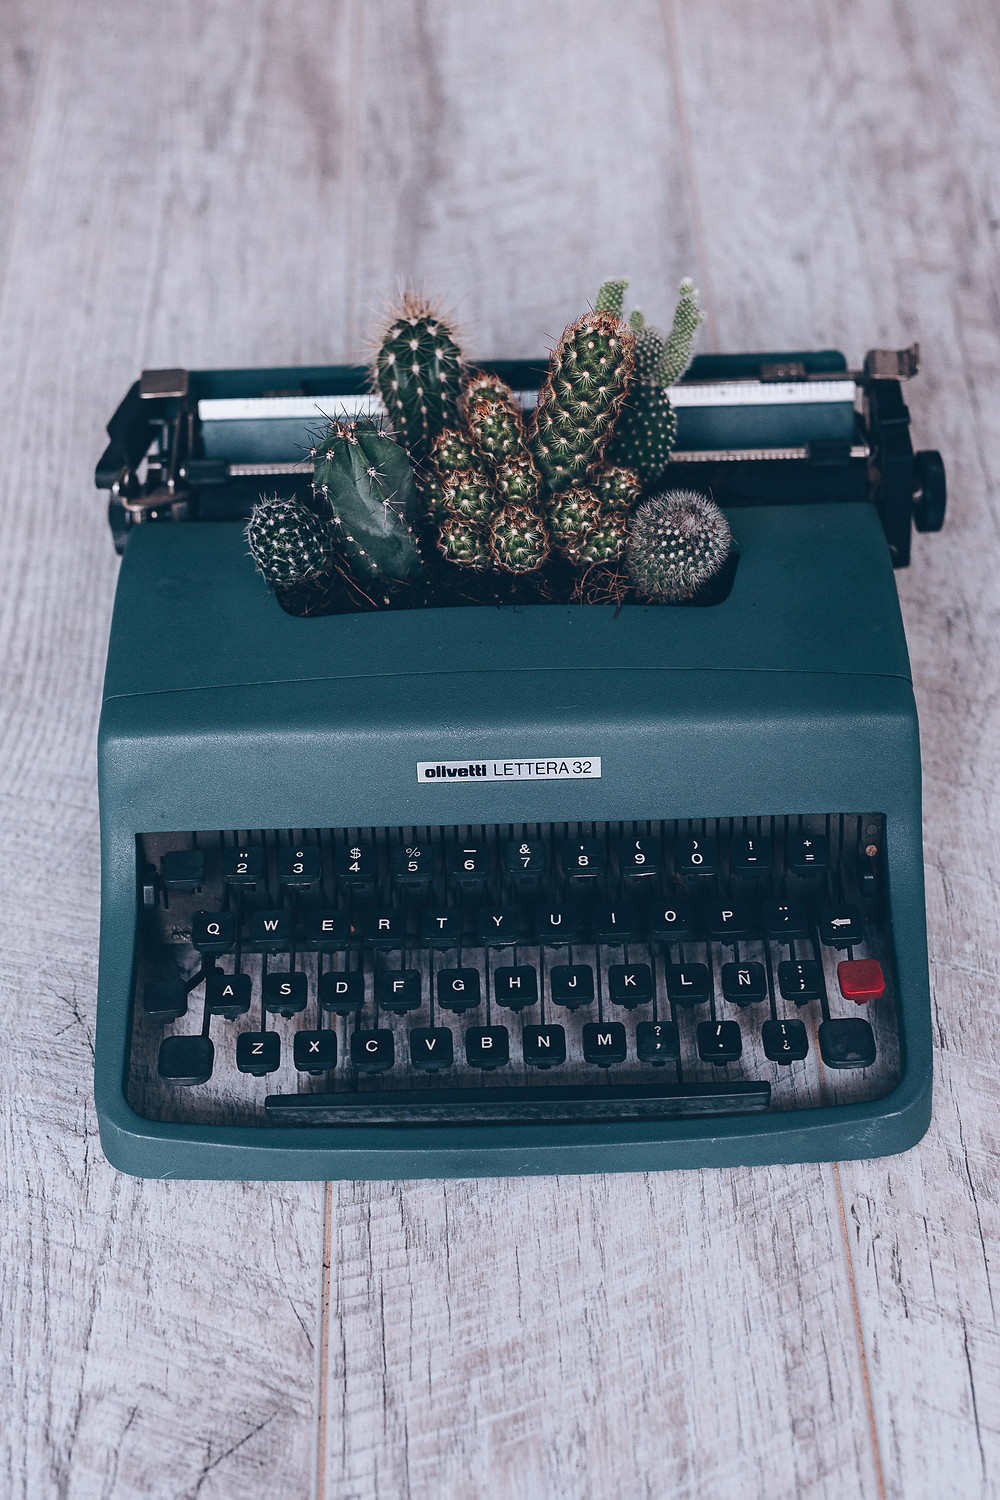 Image of a typewriter with cactus planted in it.